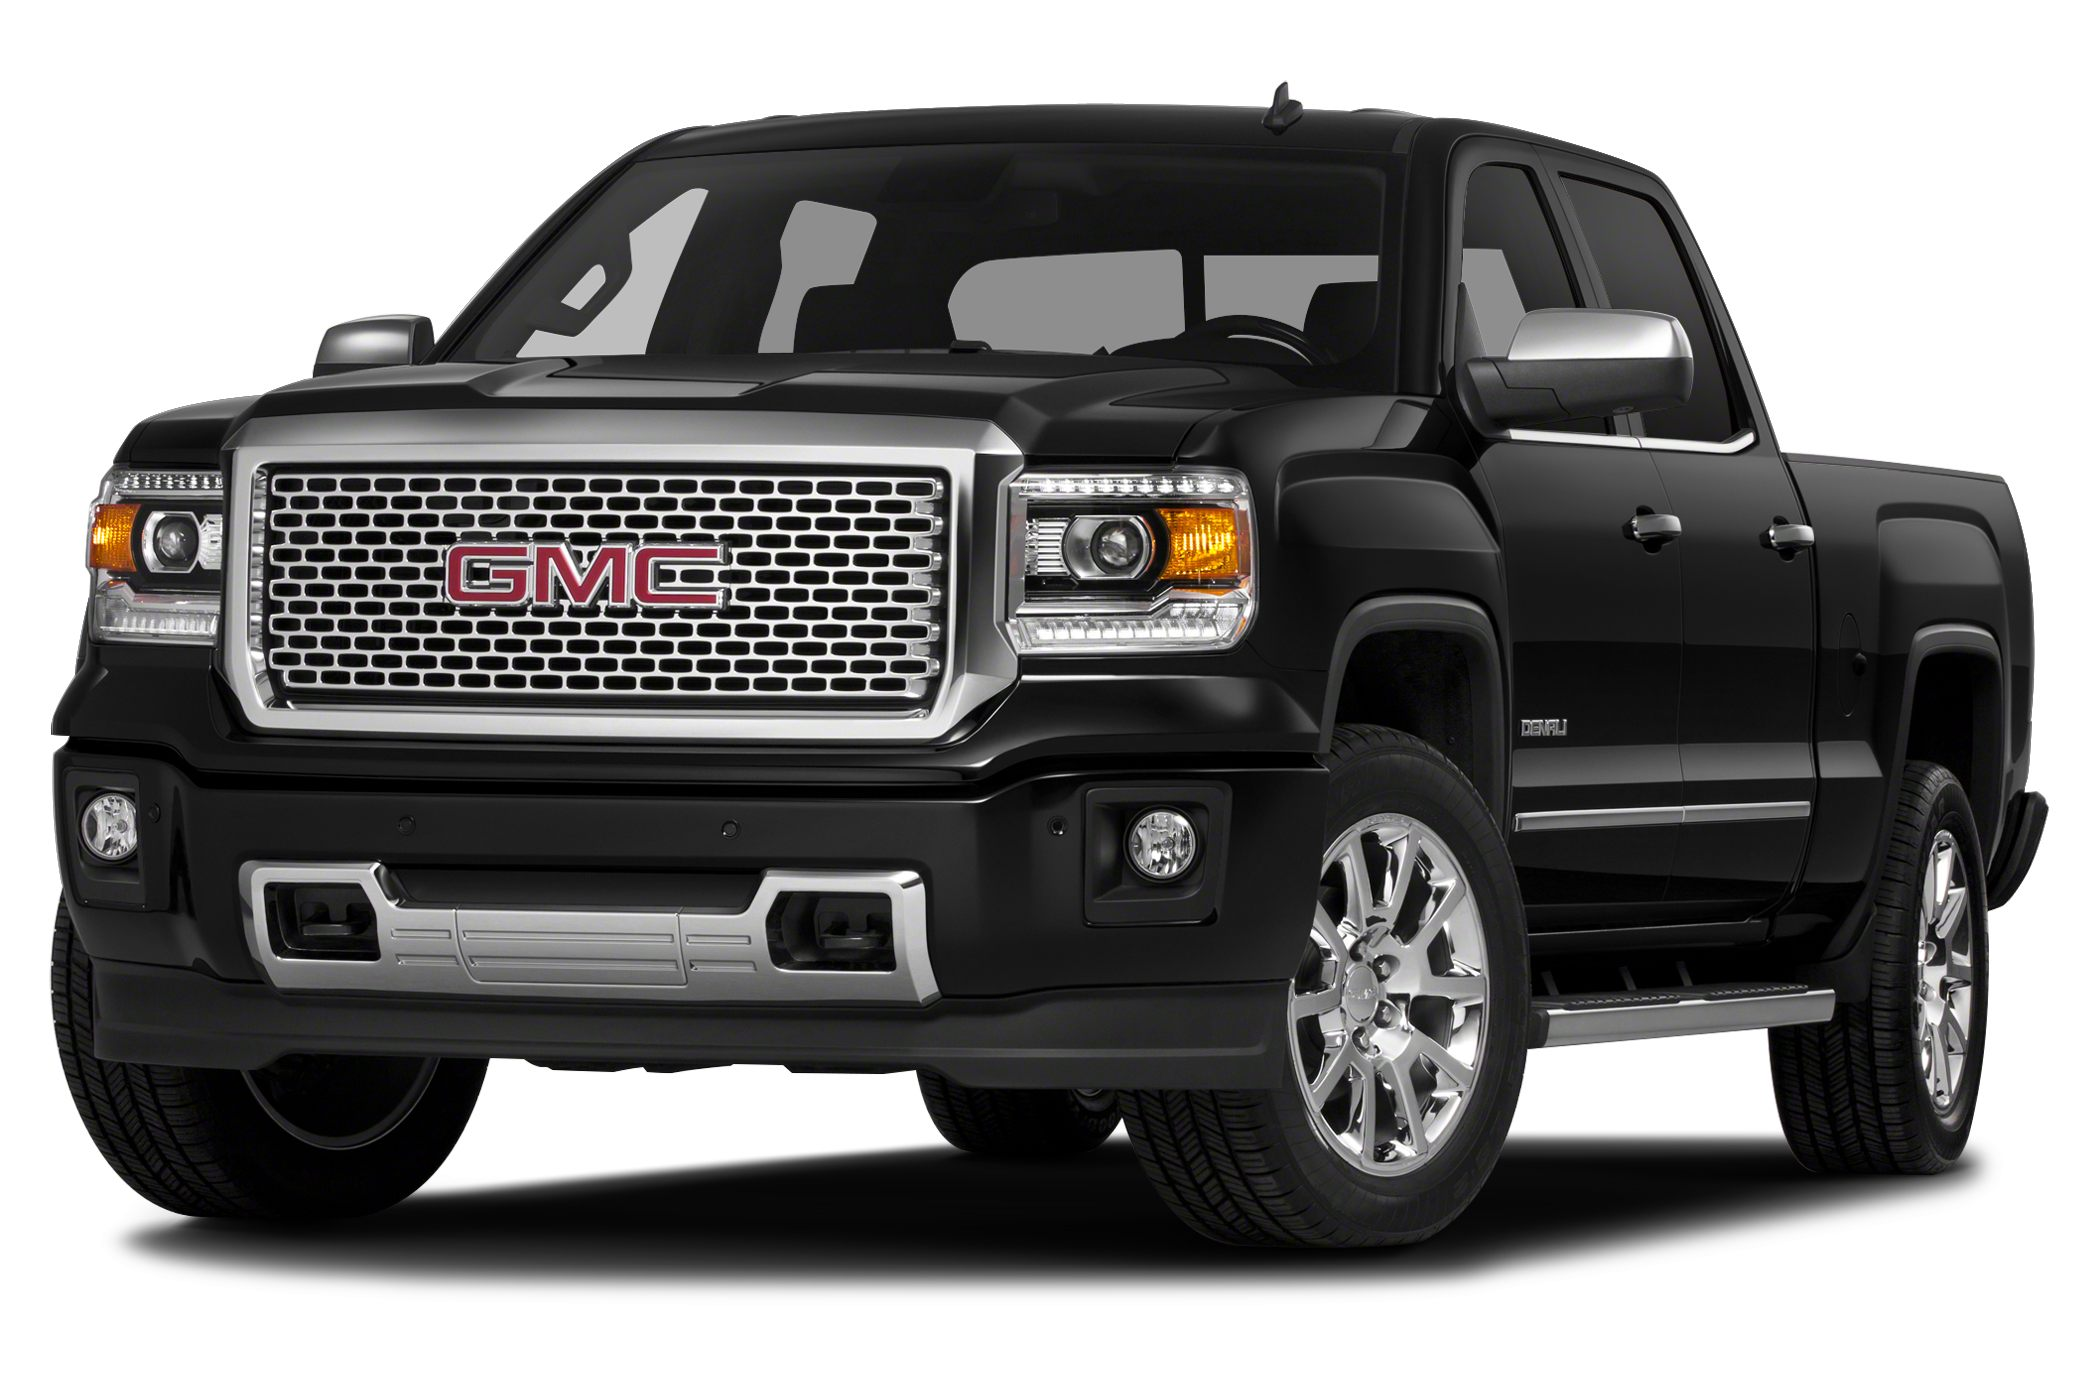 2015 GMC Sierra 1500 Denali Crew Cab Pickup for sale in Fremont for $50,096 with 0 miles